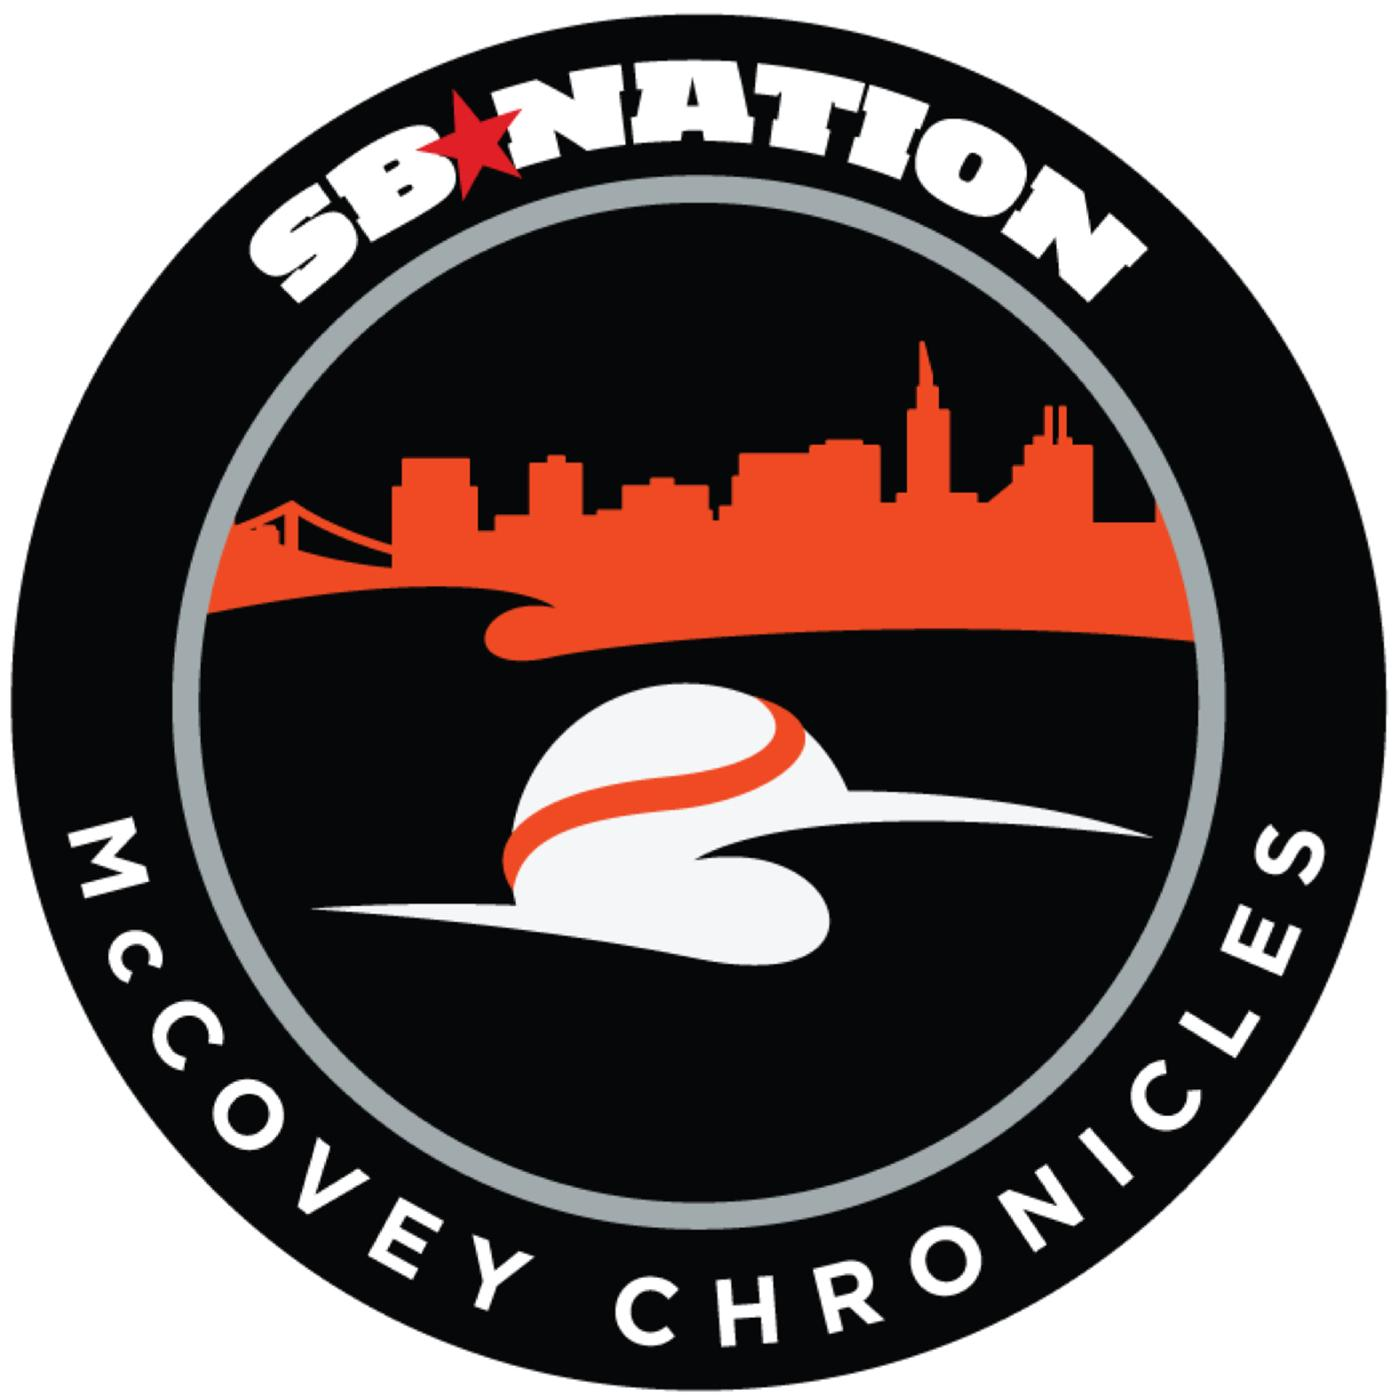 The McCovey Chroncast